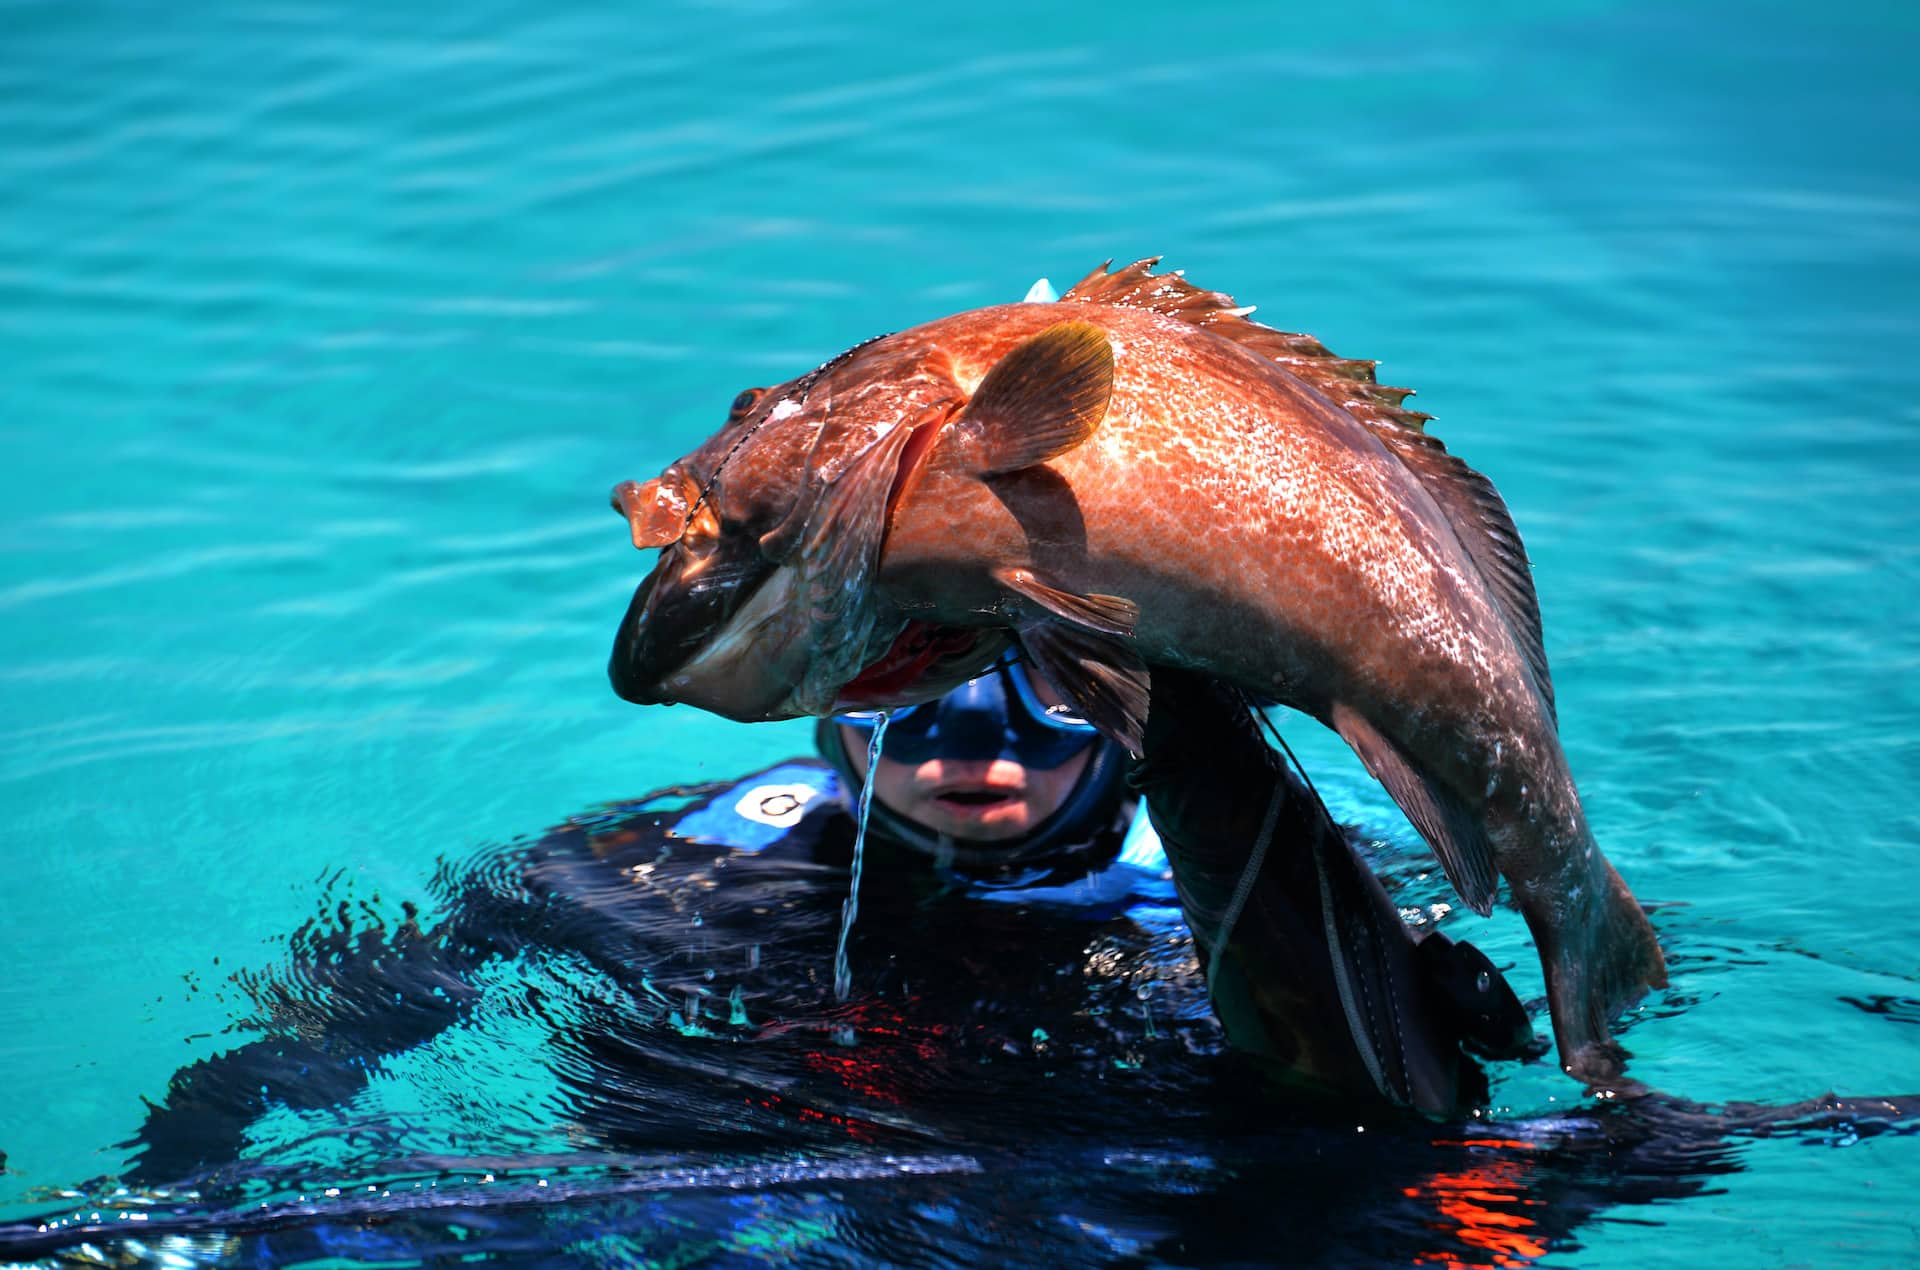 catching a fish after learning spearfishing